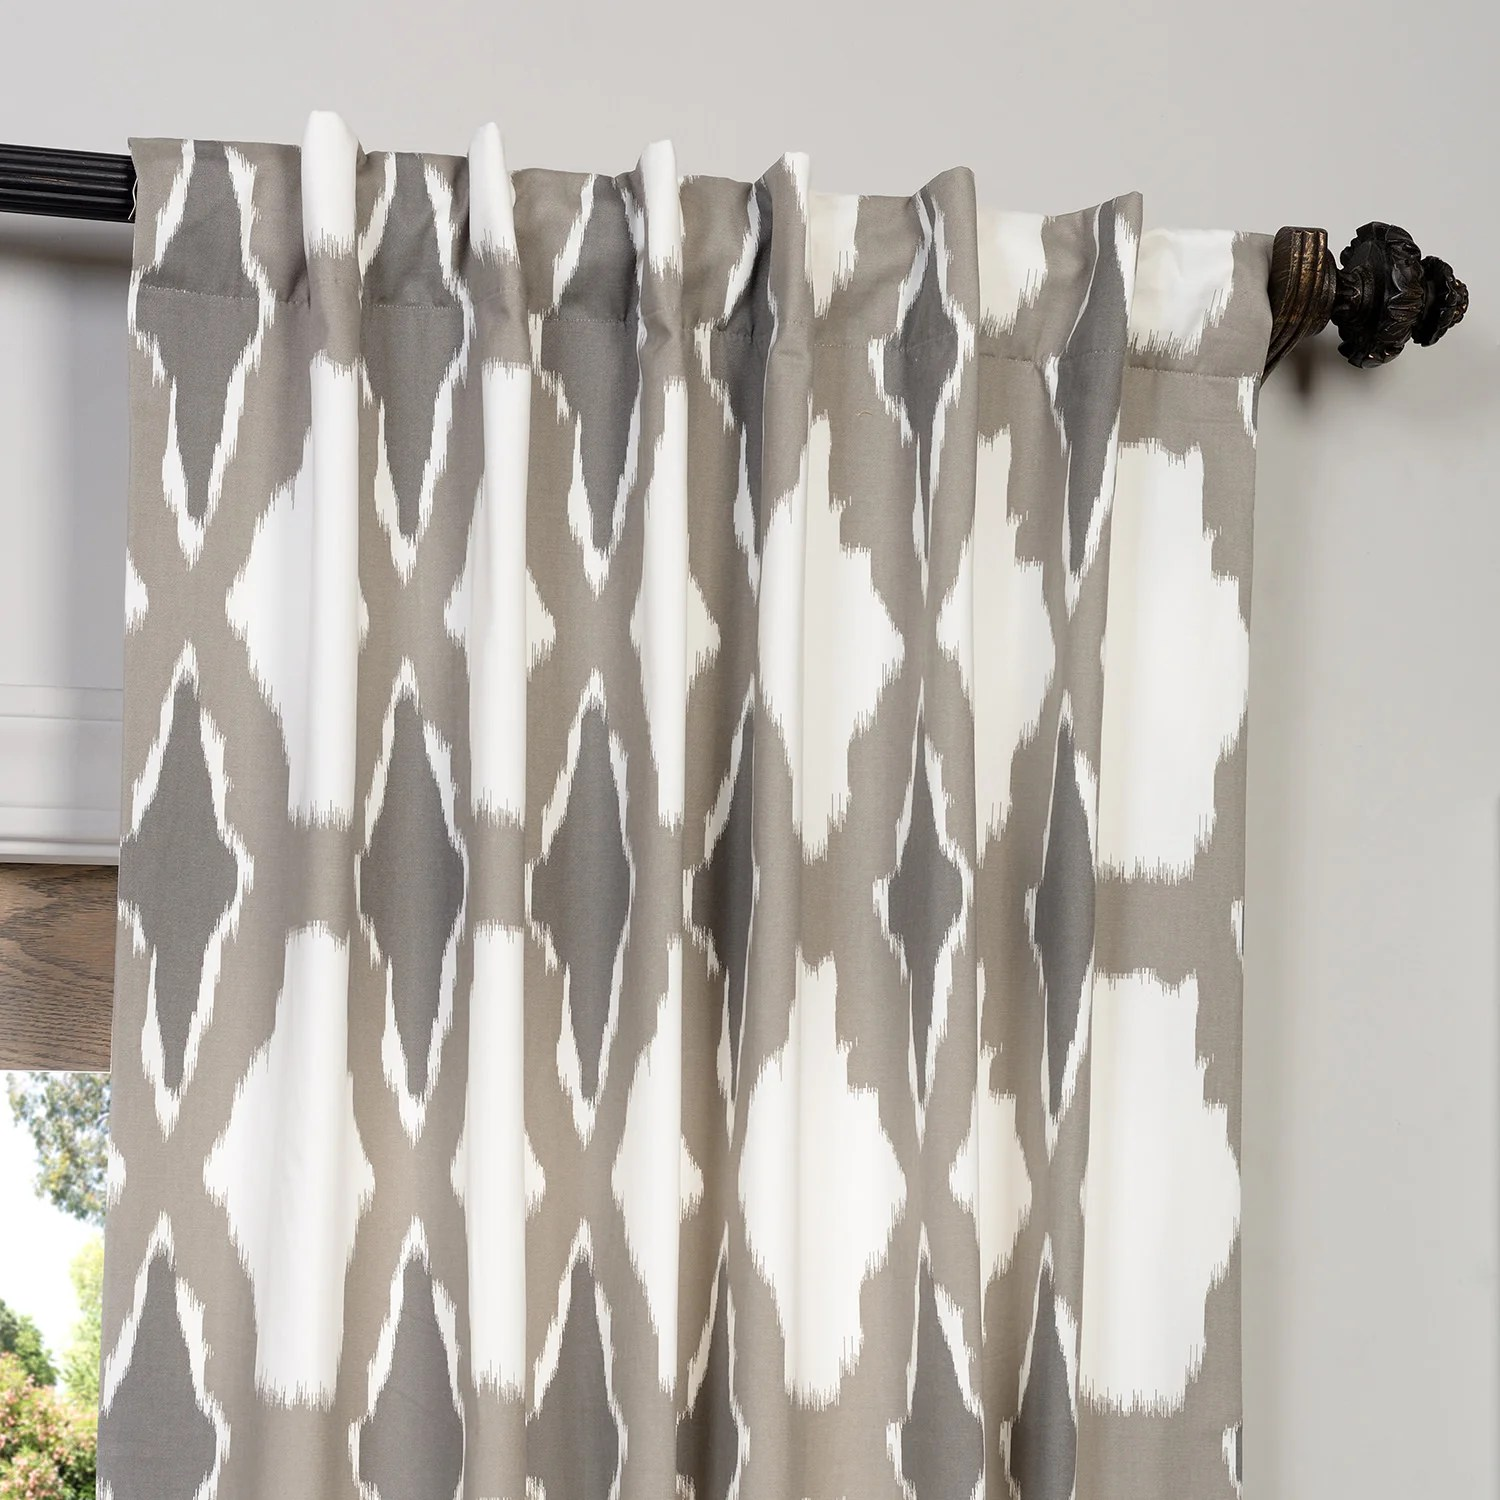 Curtain Dry Cleaning Cost BestCurtains